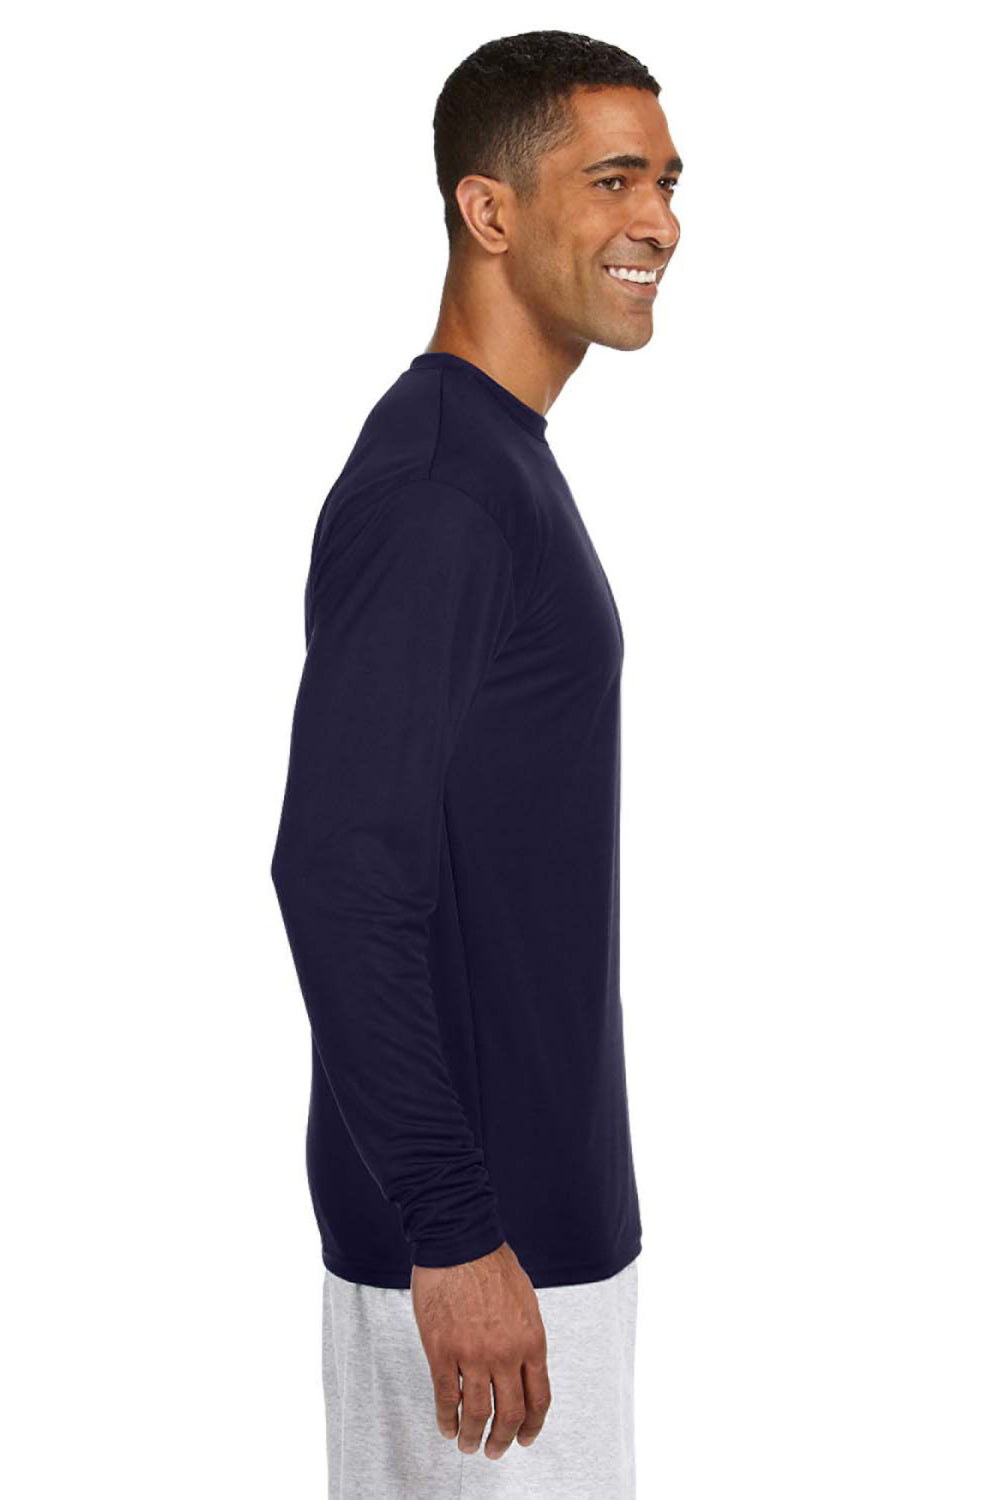 A4 N3165 Mens Cooling Performance Moisture Wicking Long Sleeve Crewneck T-Shirt Navy Blue Side